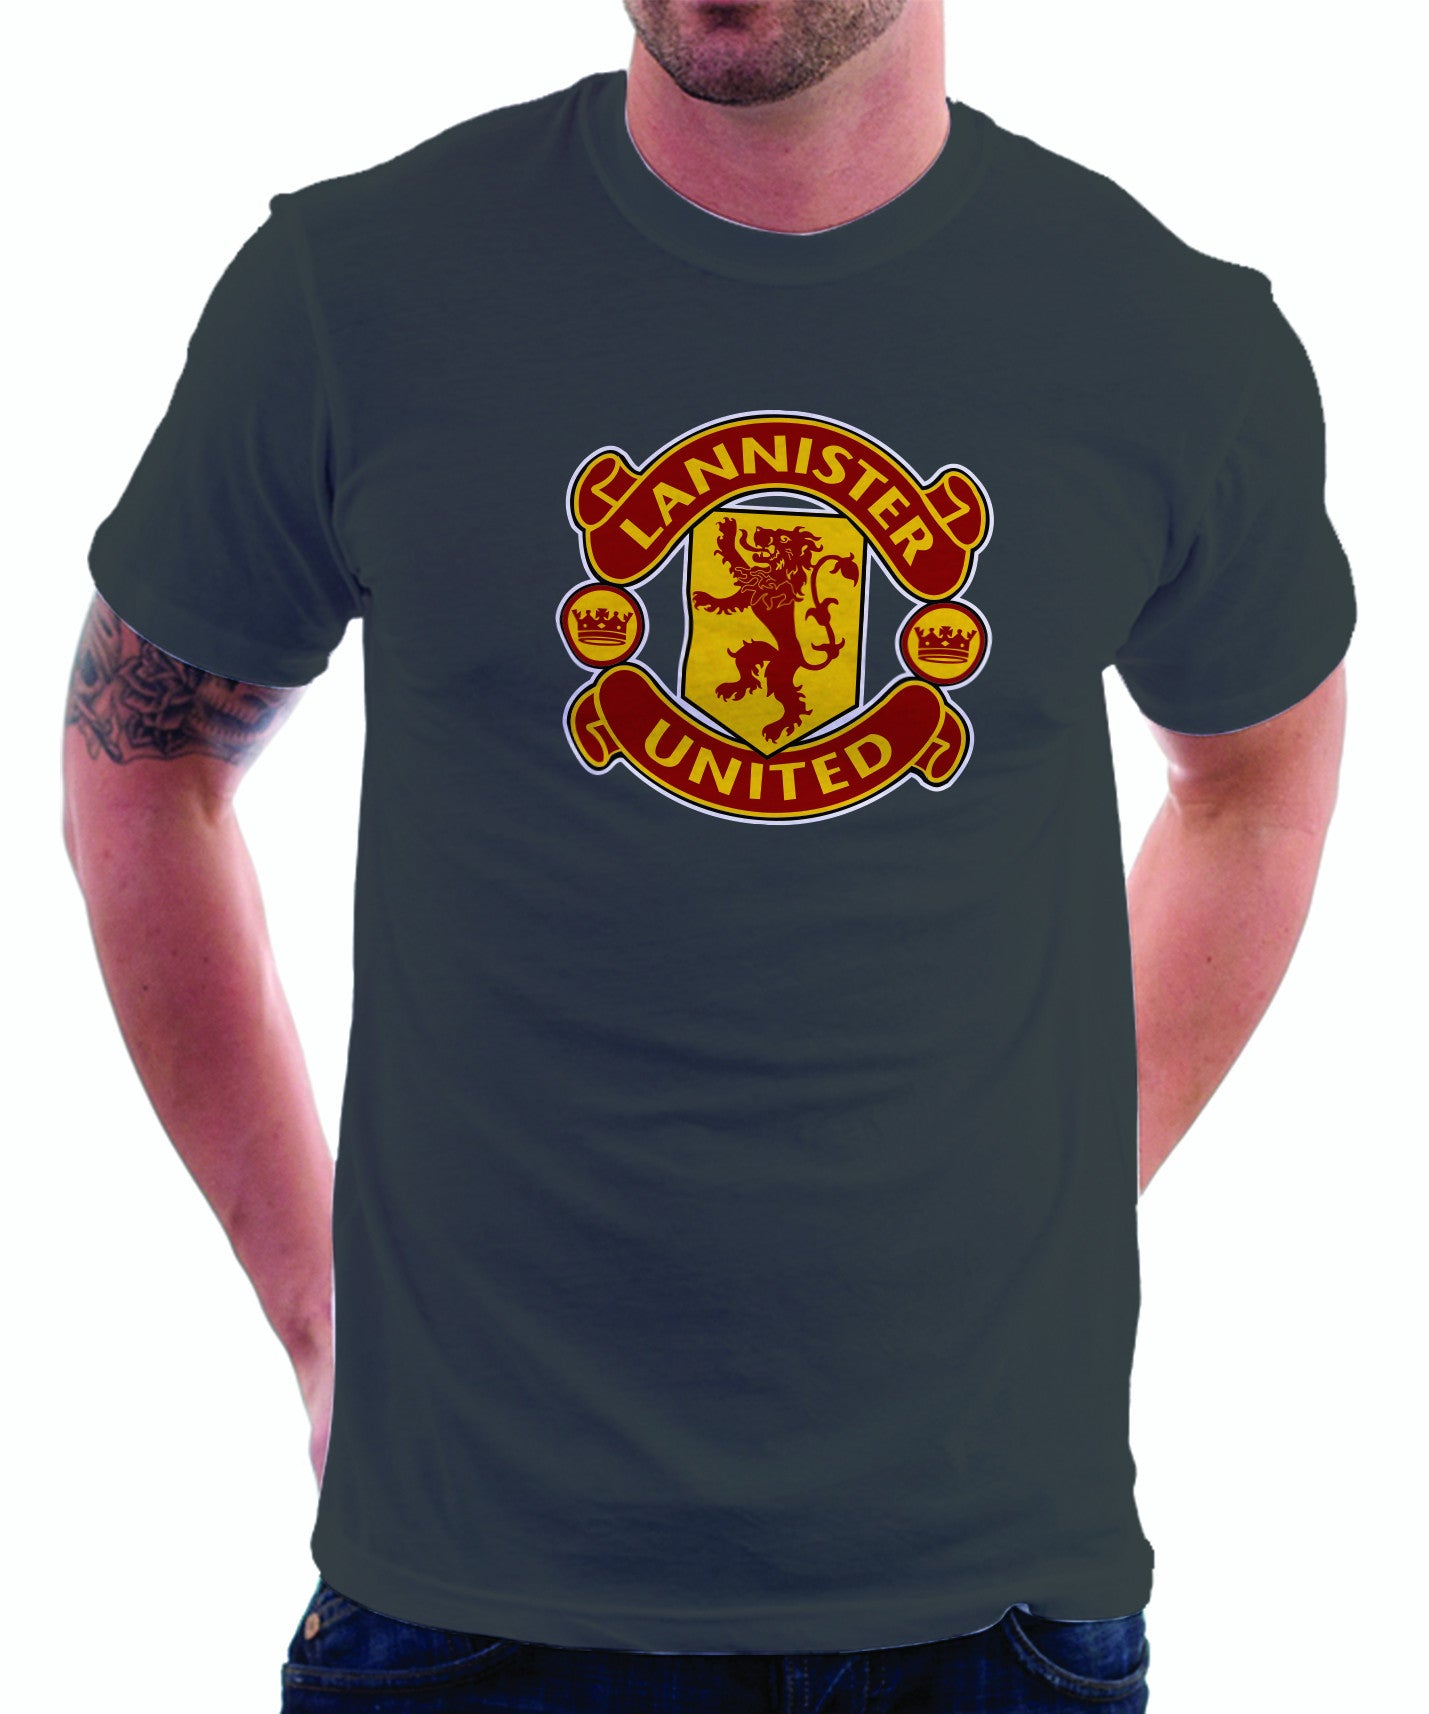 592a5efbf LIMITED EDITION: Game of Thrones Manchester United Logo Parody Spoof  t-shirt: House Lannister United Logo on Grey Colored Tshirt